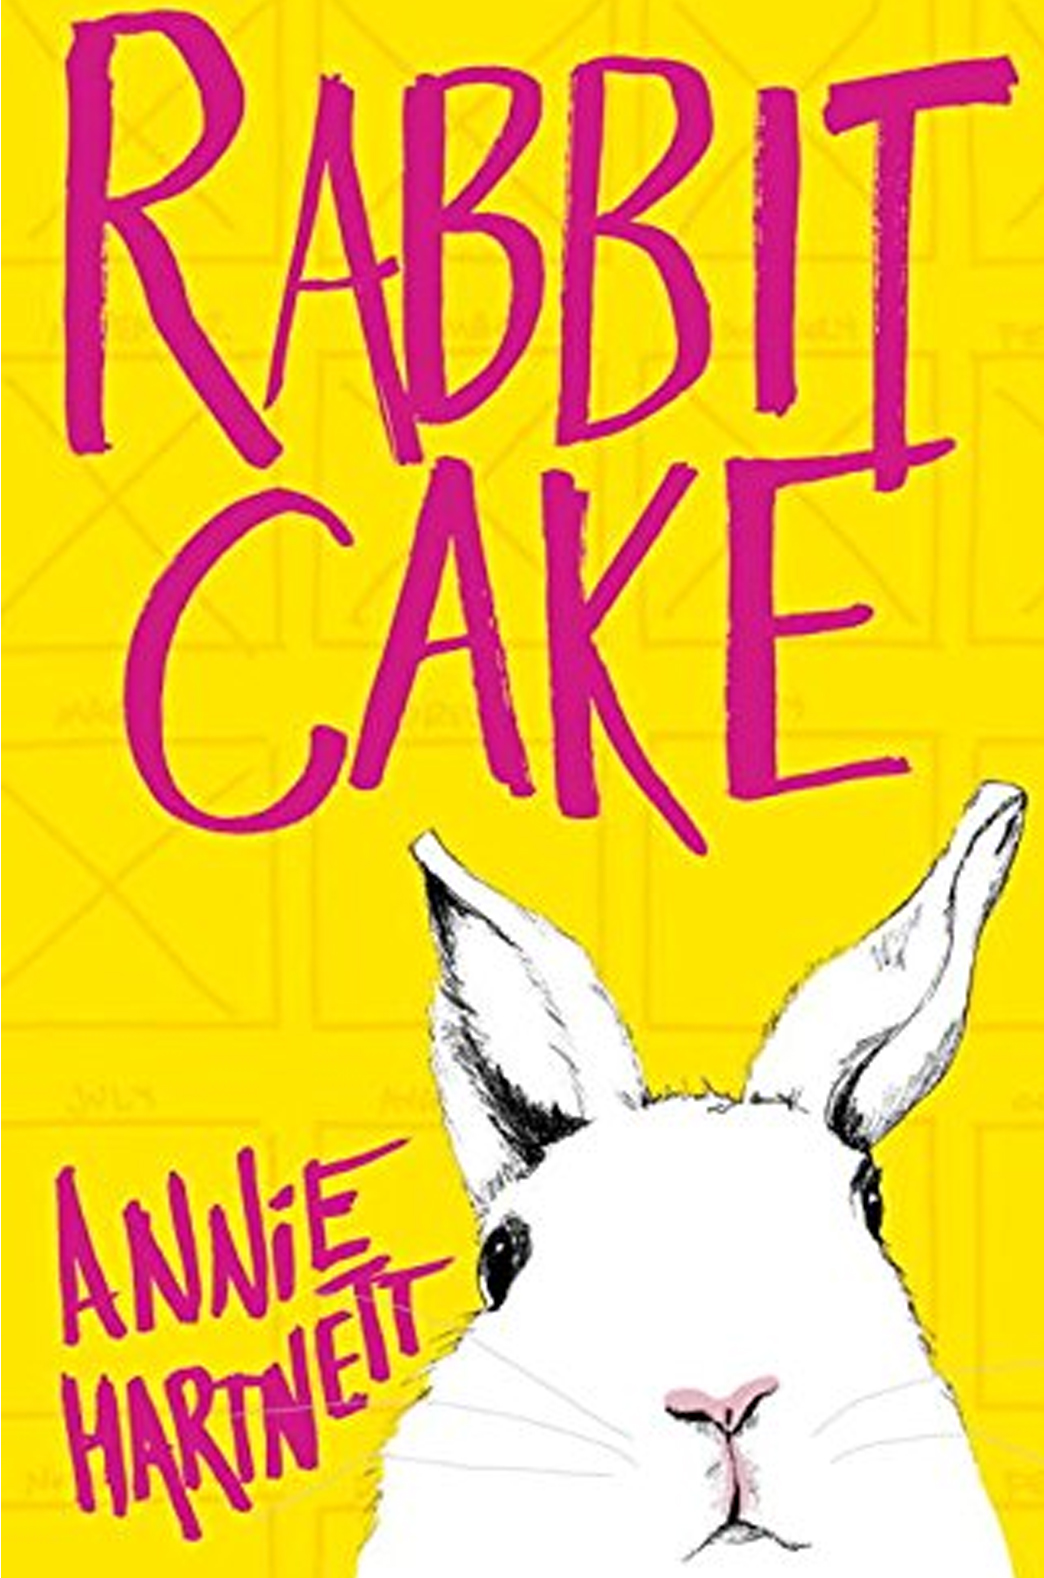 kathleen stone writer booklab literary salon rabbit cake annie hartnett